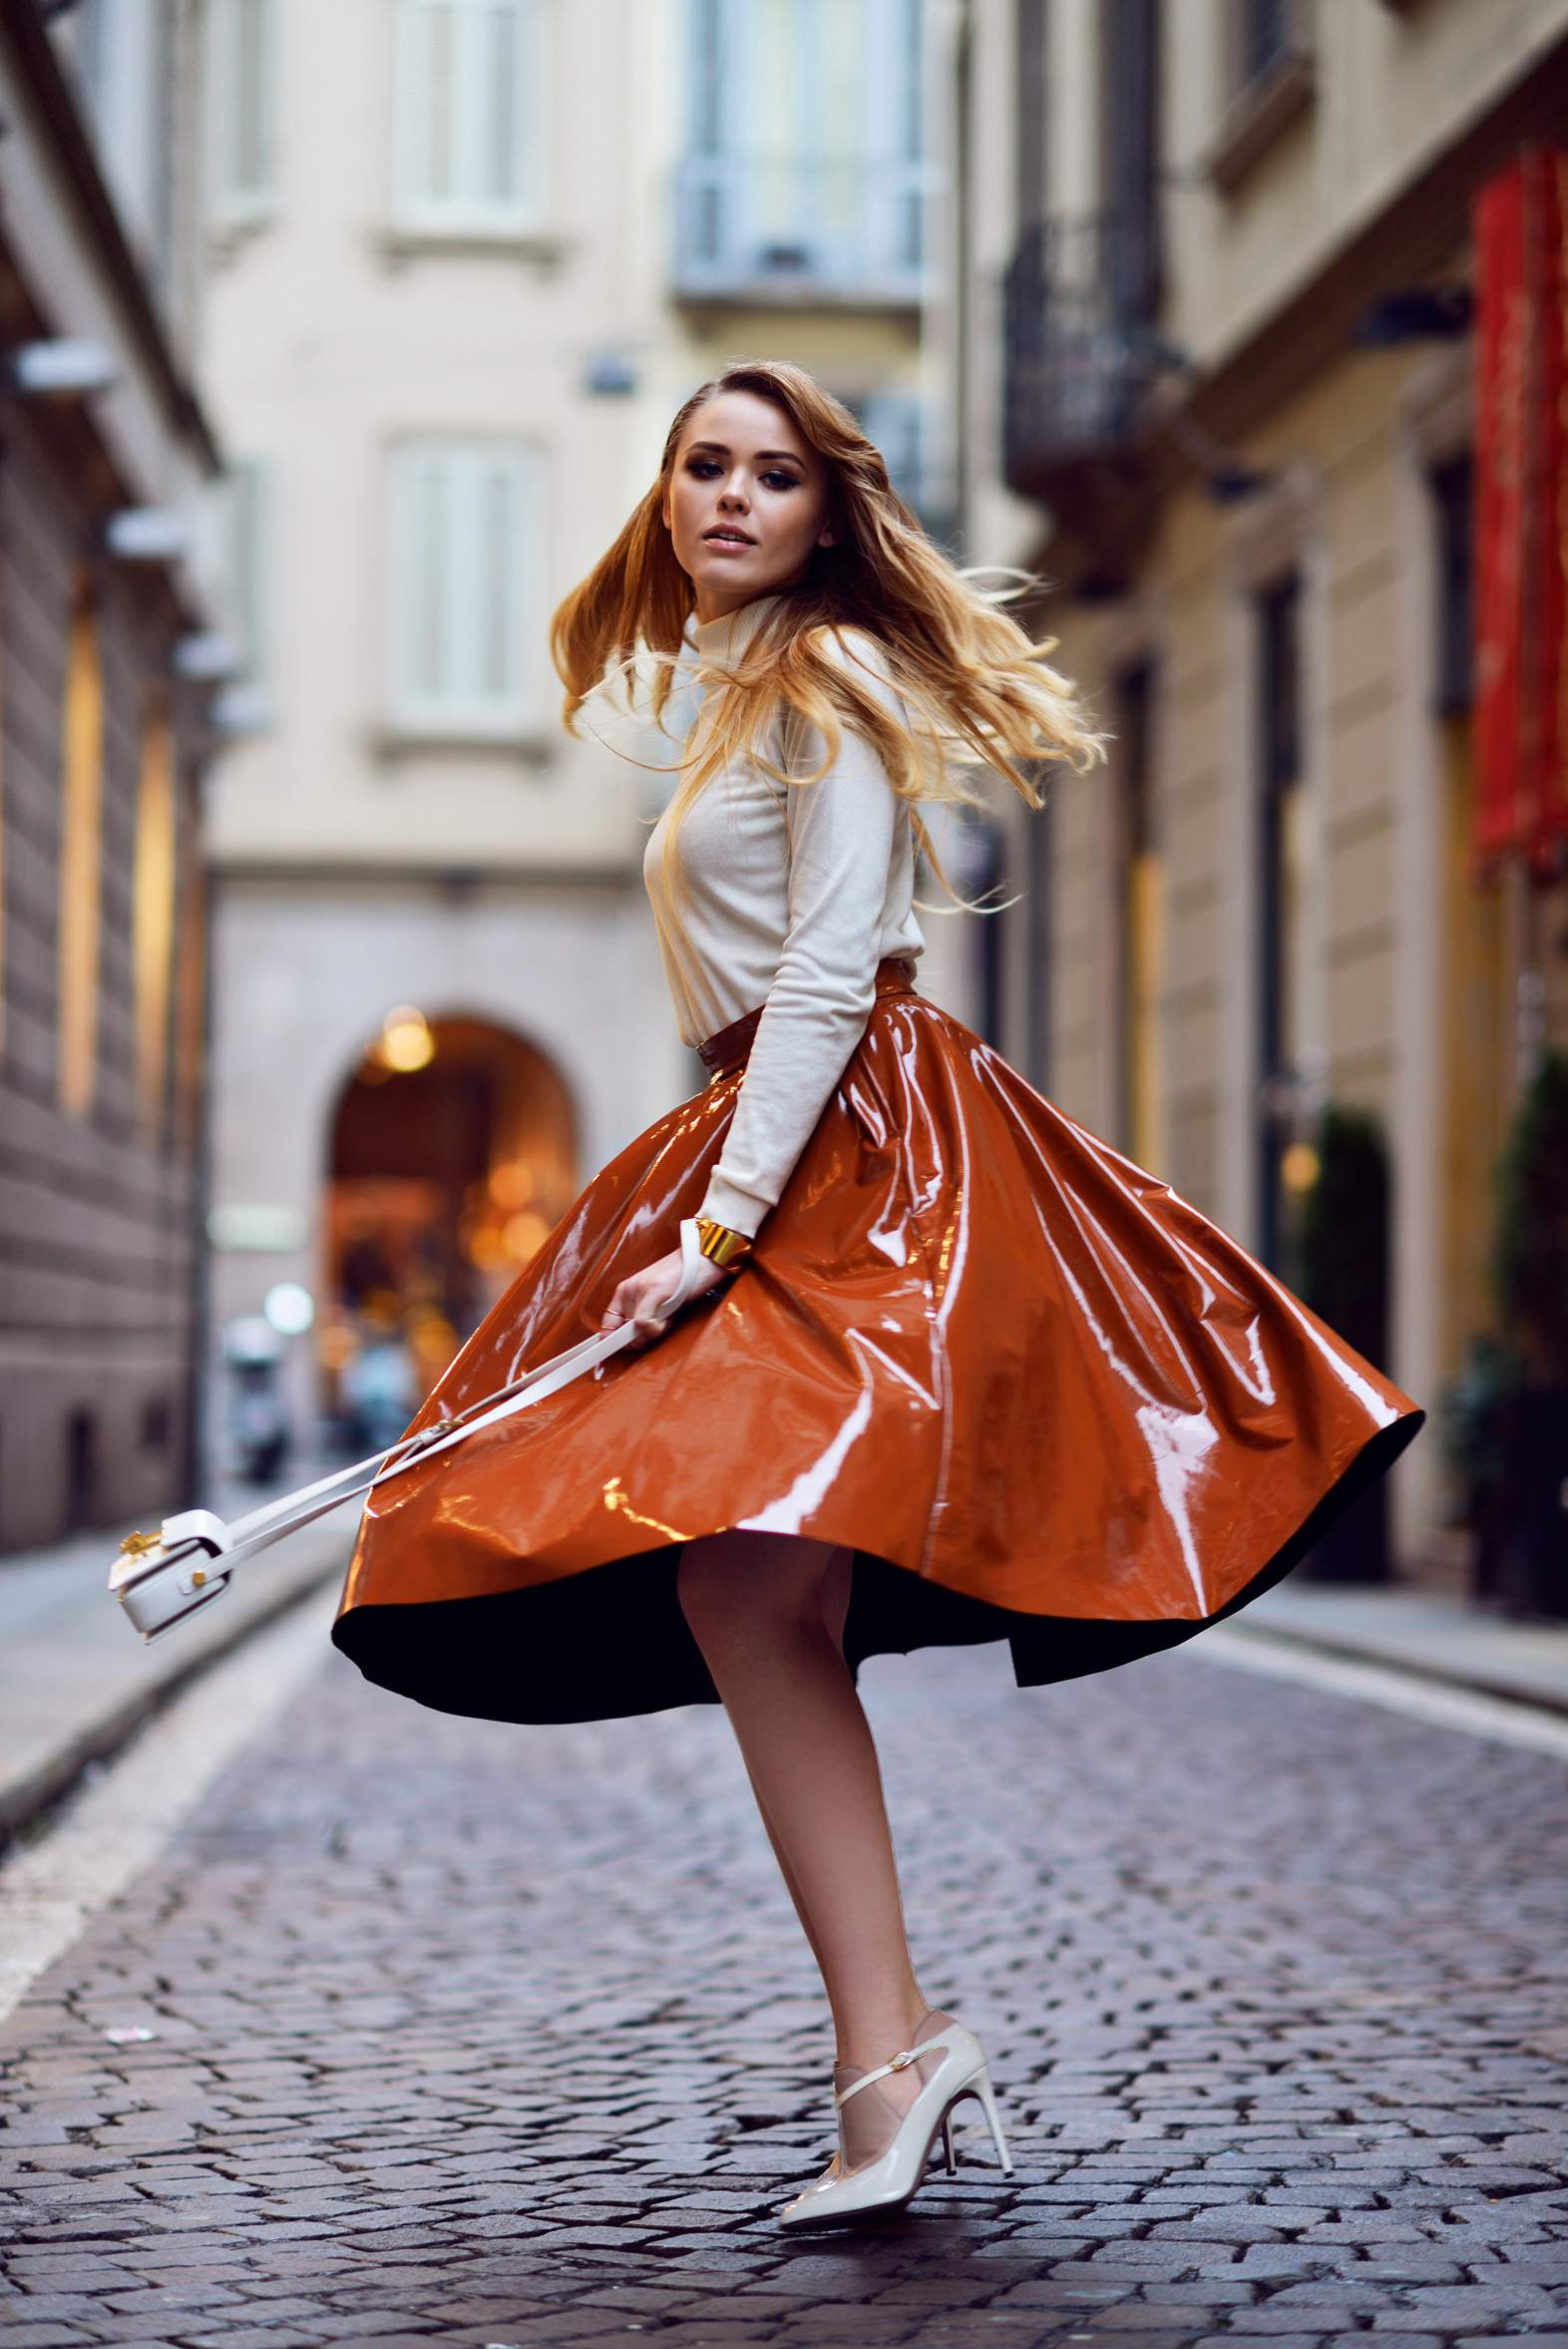 0.-patent-leather-skirt-with-chic-top